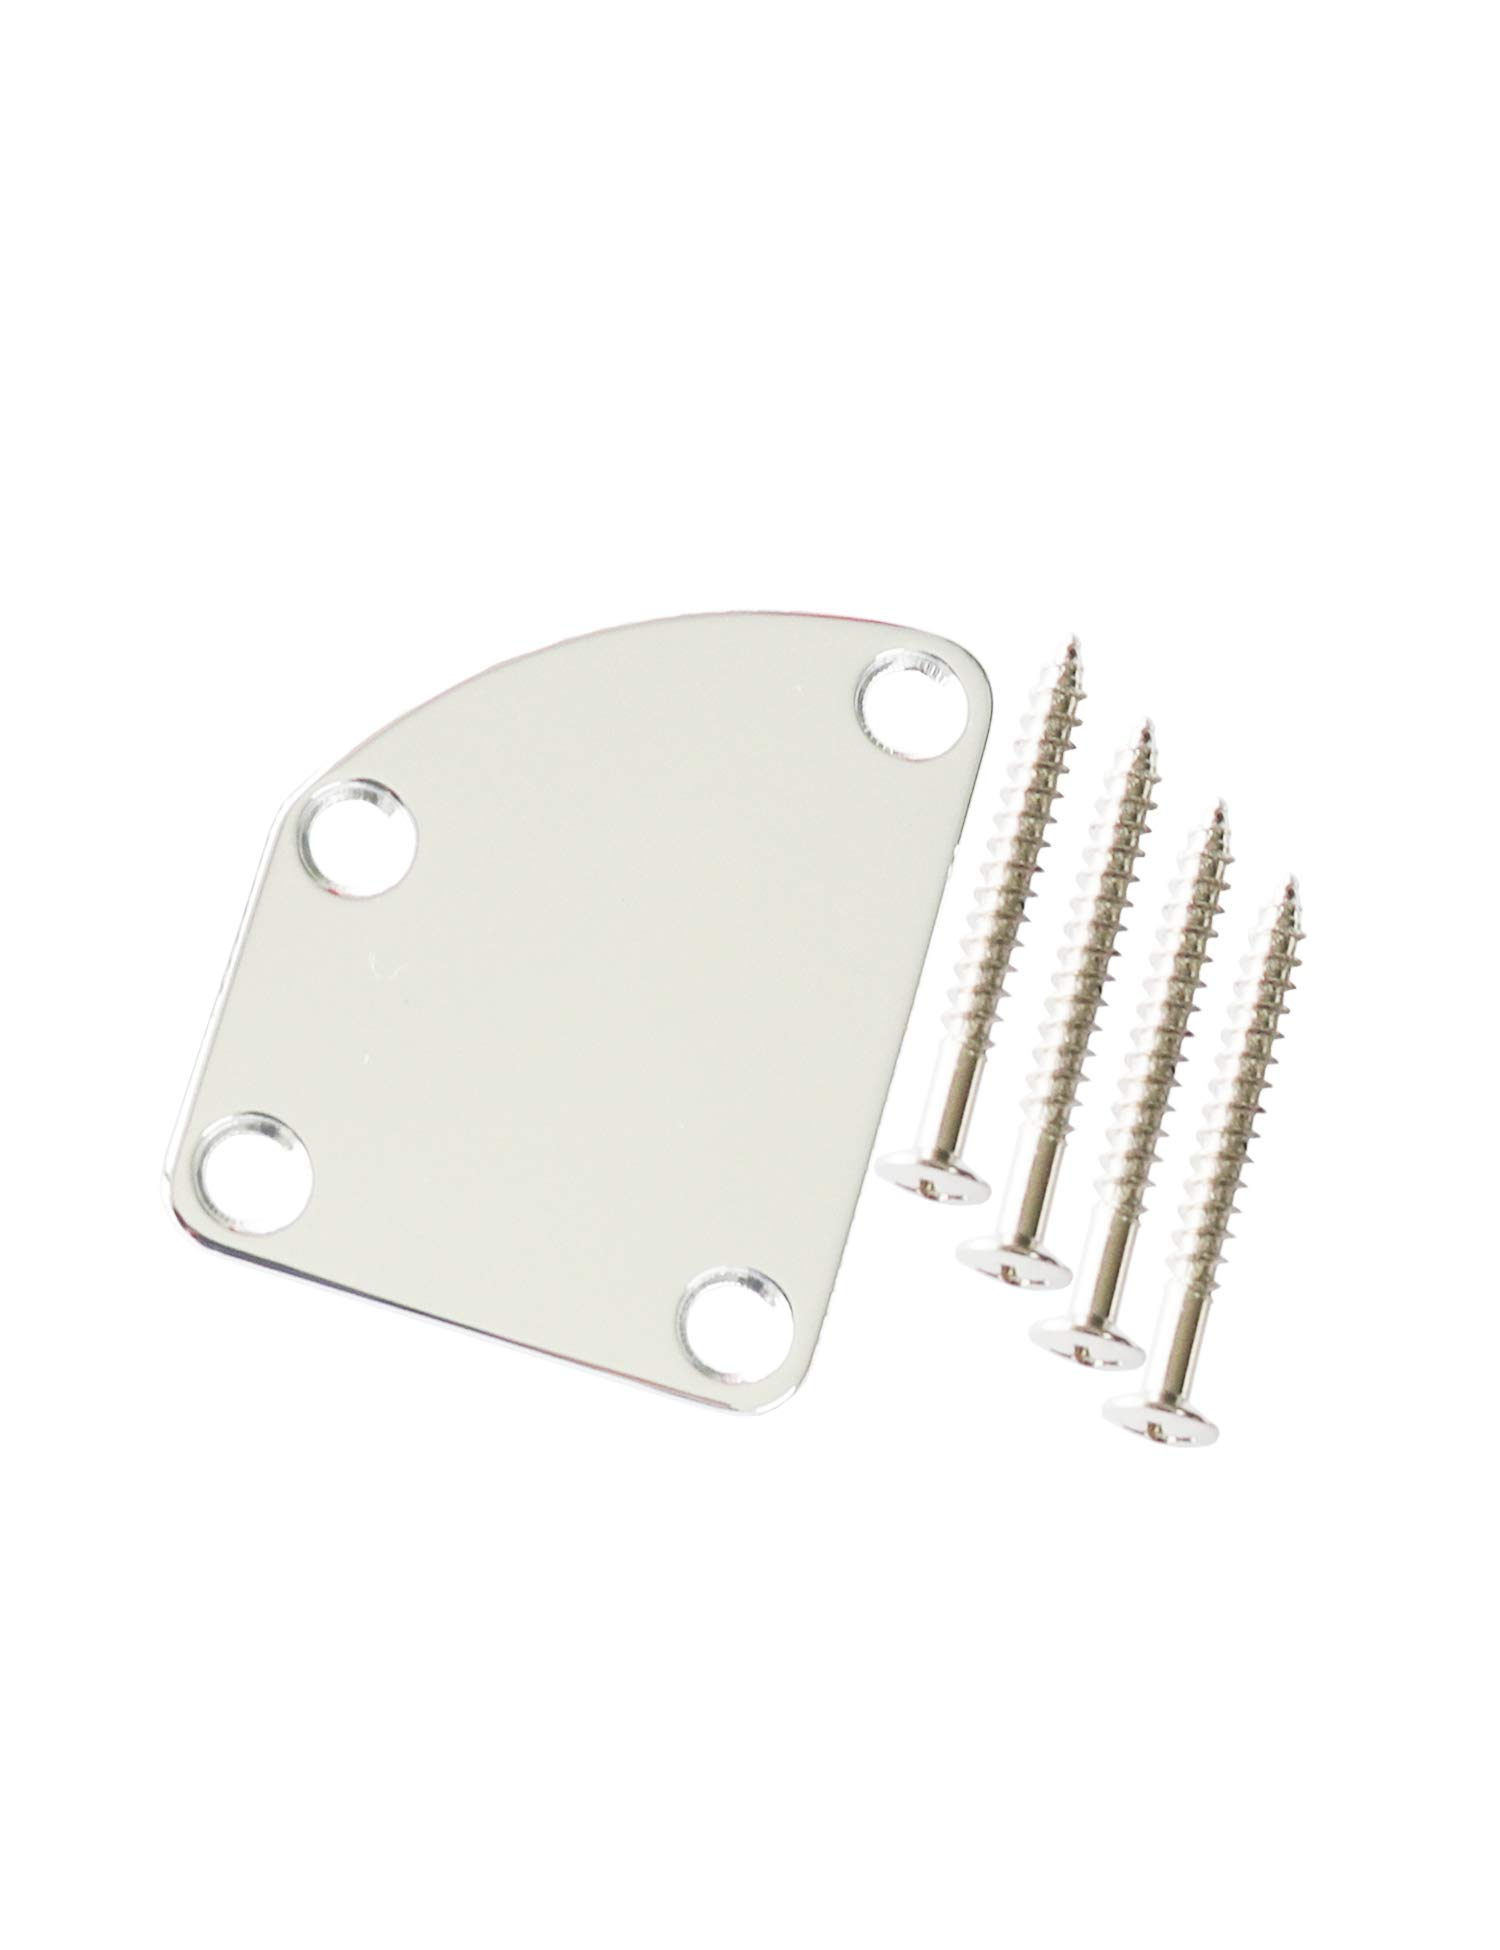 Metallor Electric Guitar Neck Plate Curved Cutaway Semi Round 4 Holes with Screws Compatible with Strat Tele Style Guitar Bass Parts Replacement (Chrome)